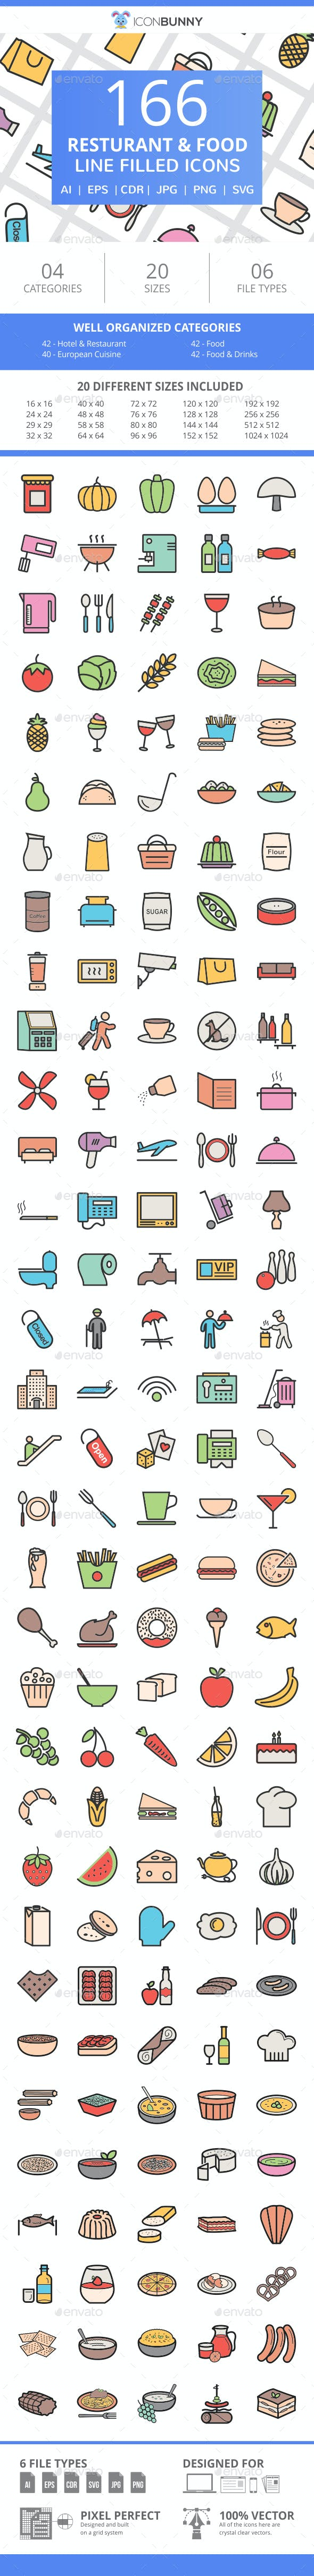 166 Restaurant & Food Filled Line Icons